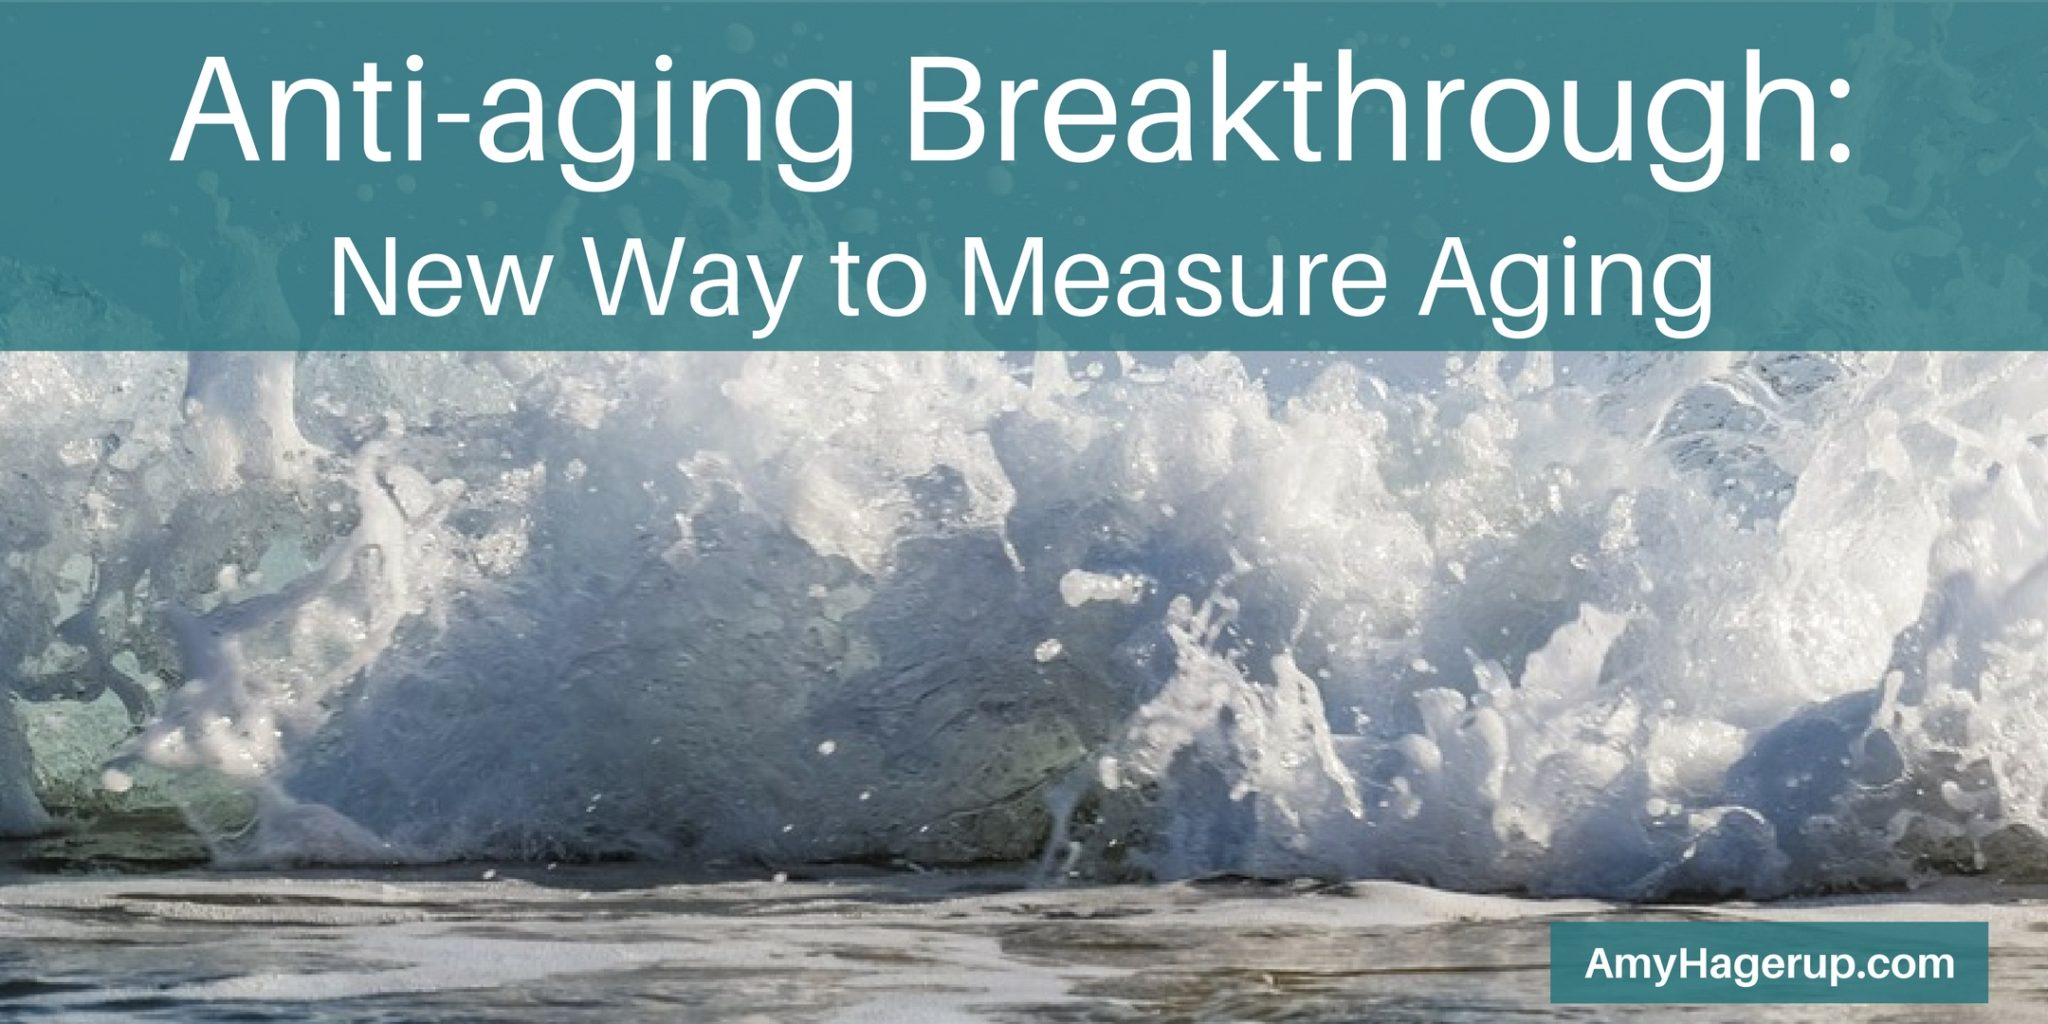 Here is a new way to measure aging. Check it out and begin your anti-aging skin care.